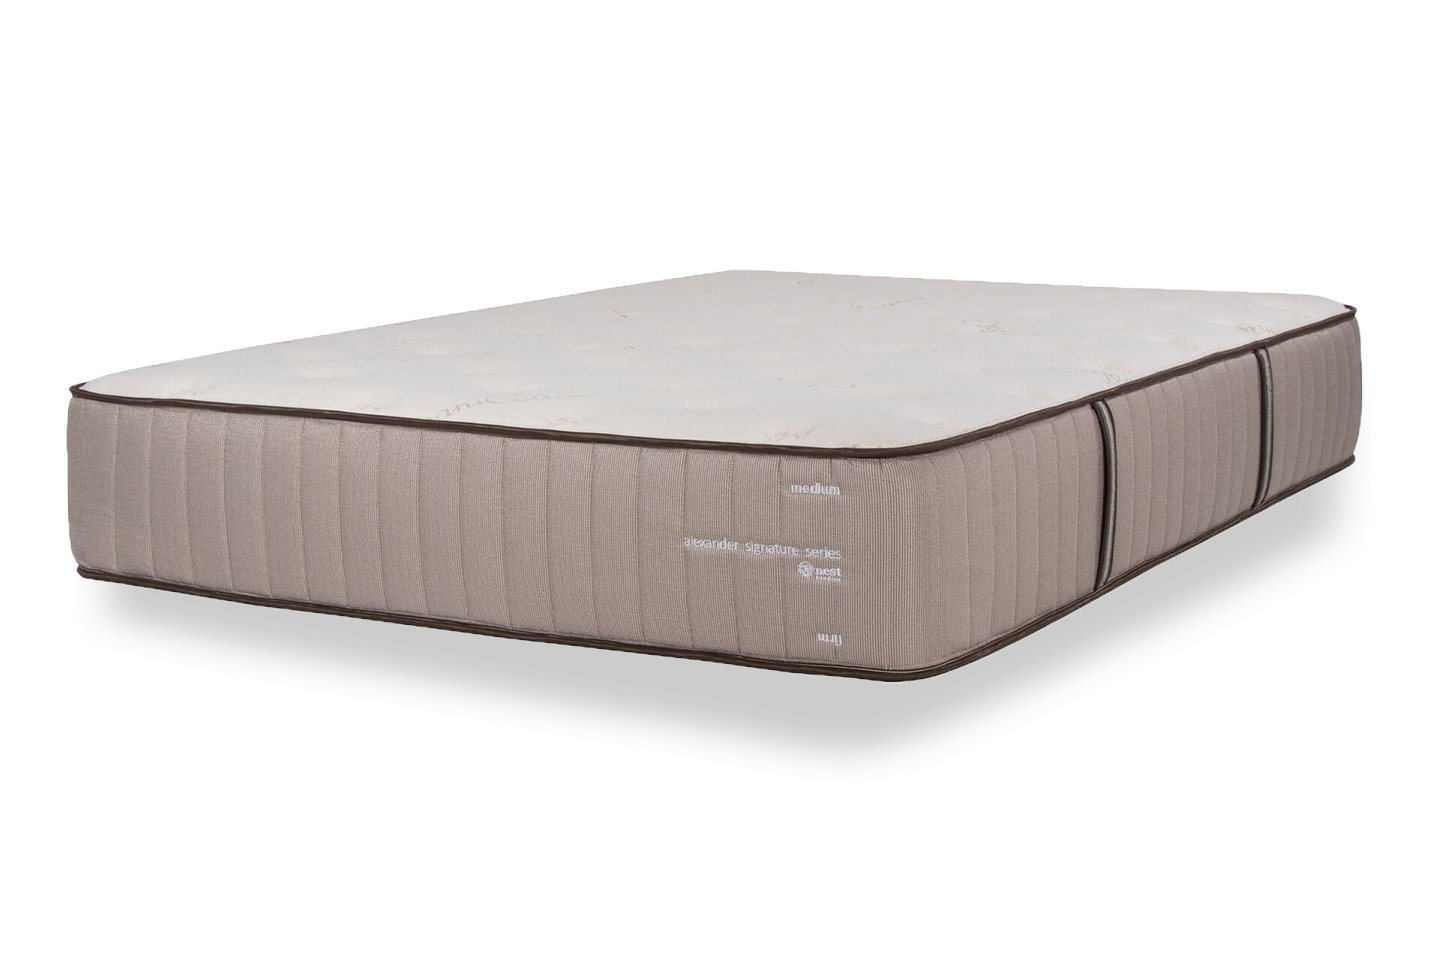 competitive price 59aaf 7d473 Best Mattress for Side Sleepers: 2019 Buyer's Guide - Savvy ...